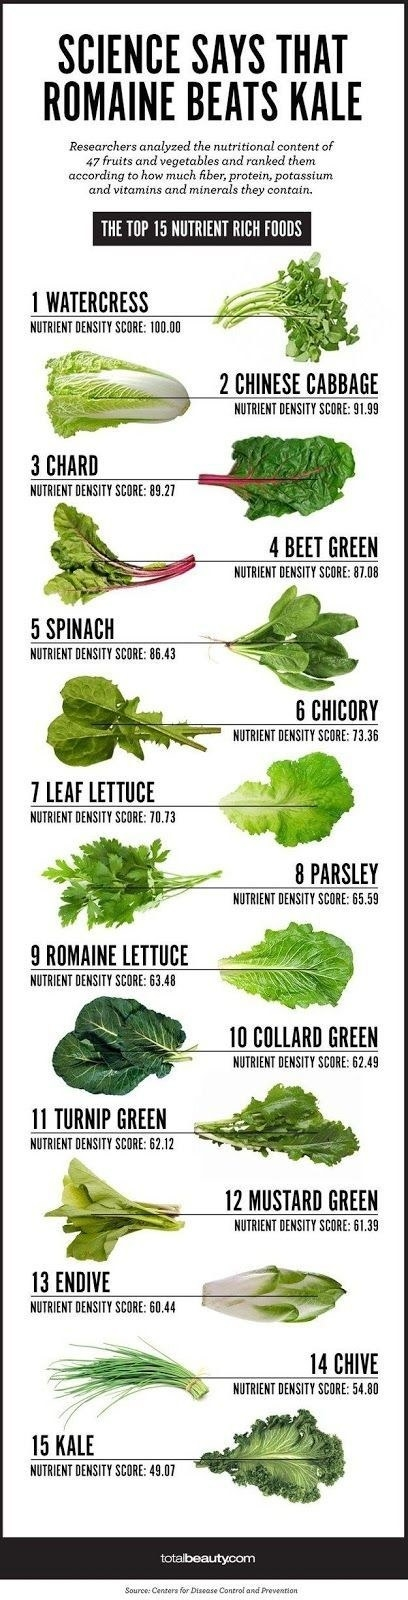 For choosing the healthiest greens for your salad: